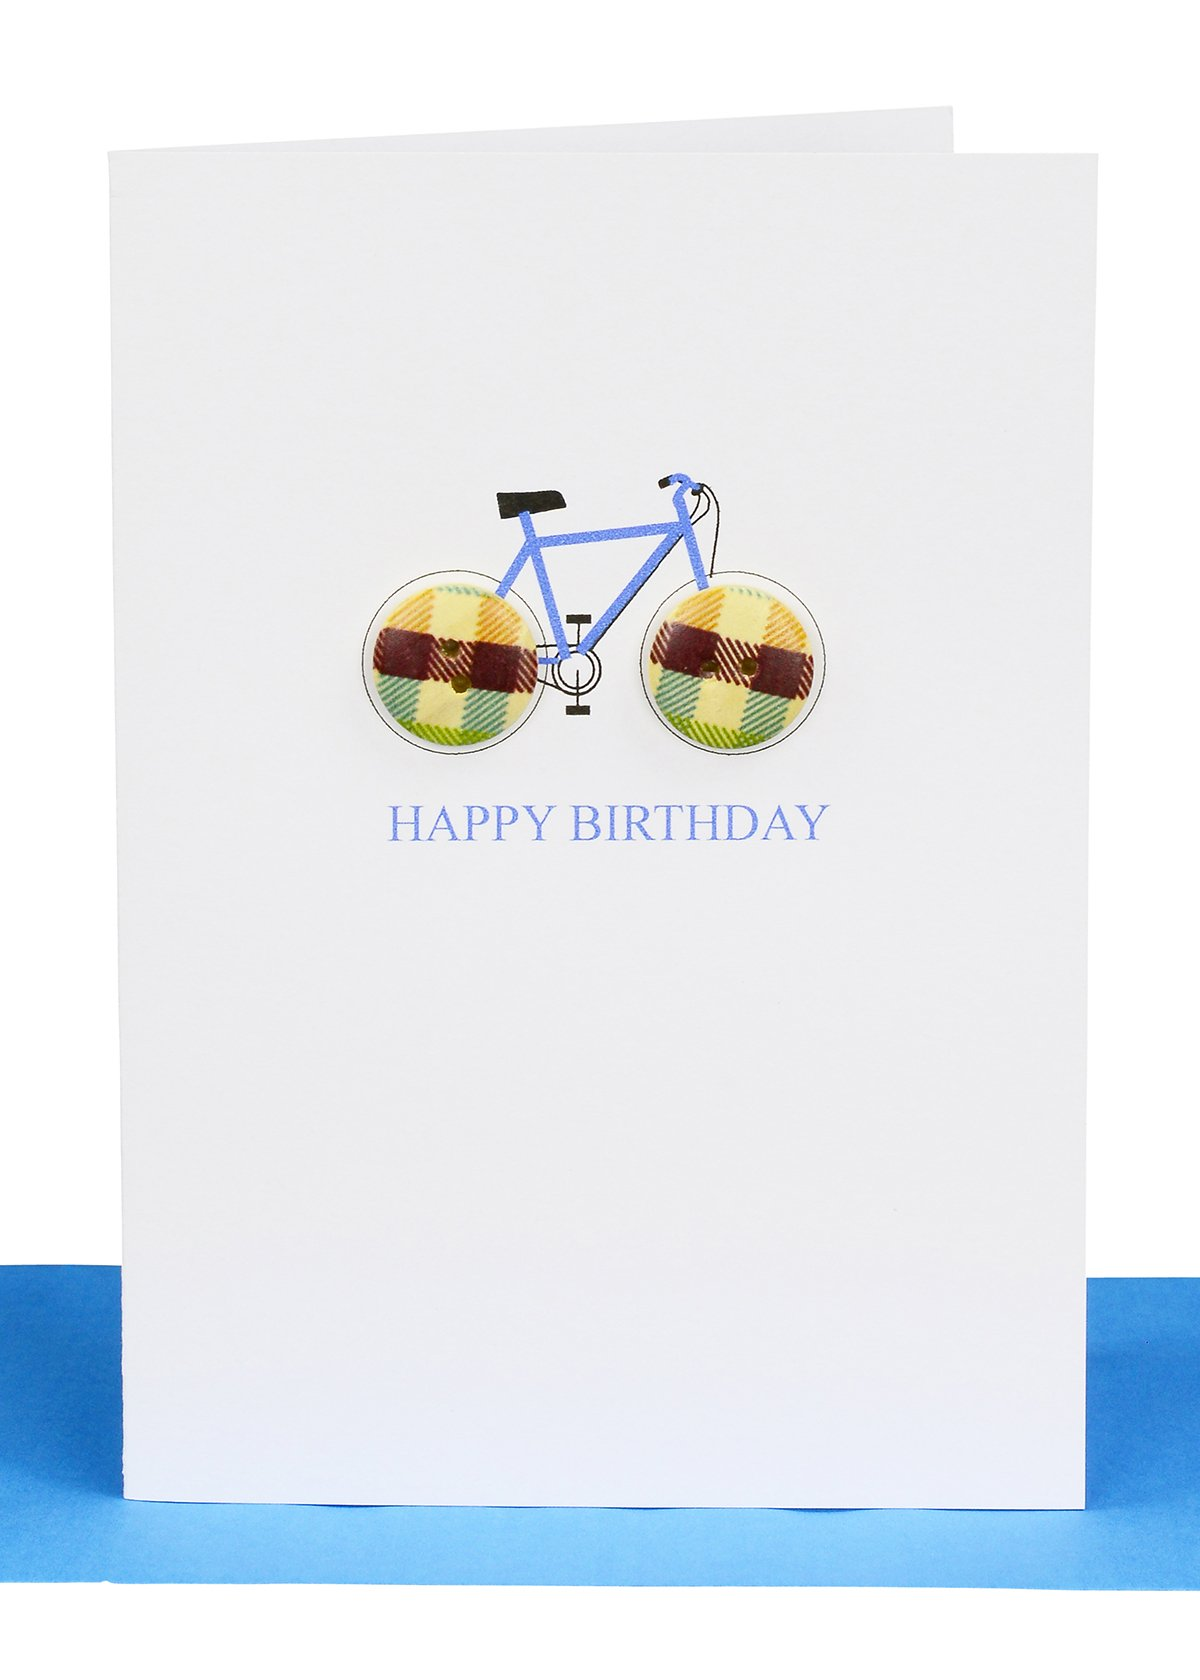 Wholesale Birthday Cards Australian Handmade Gift Greeting Bulk Orders